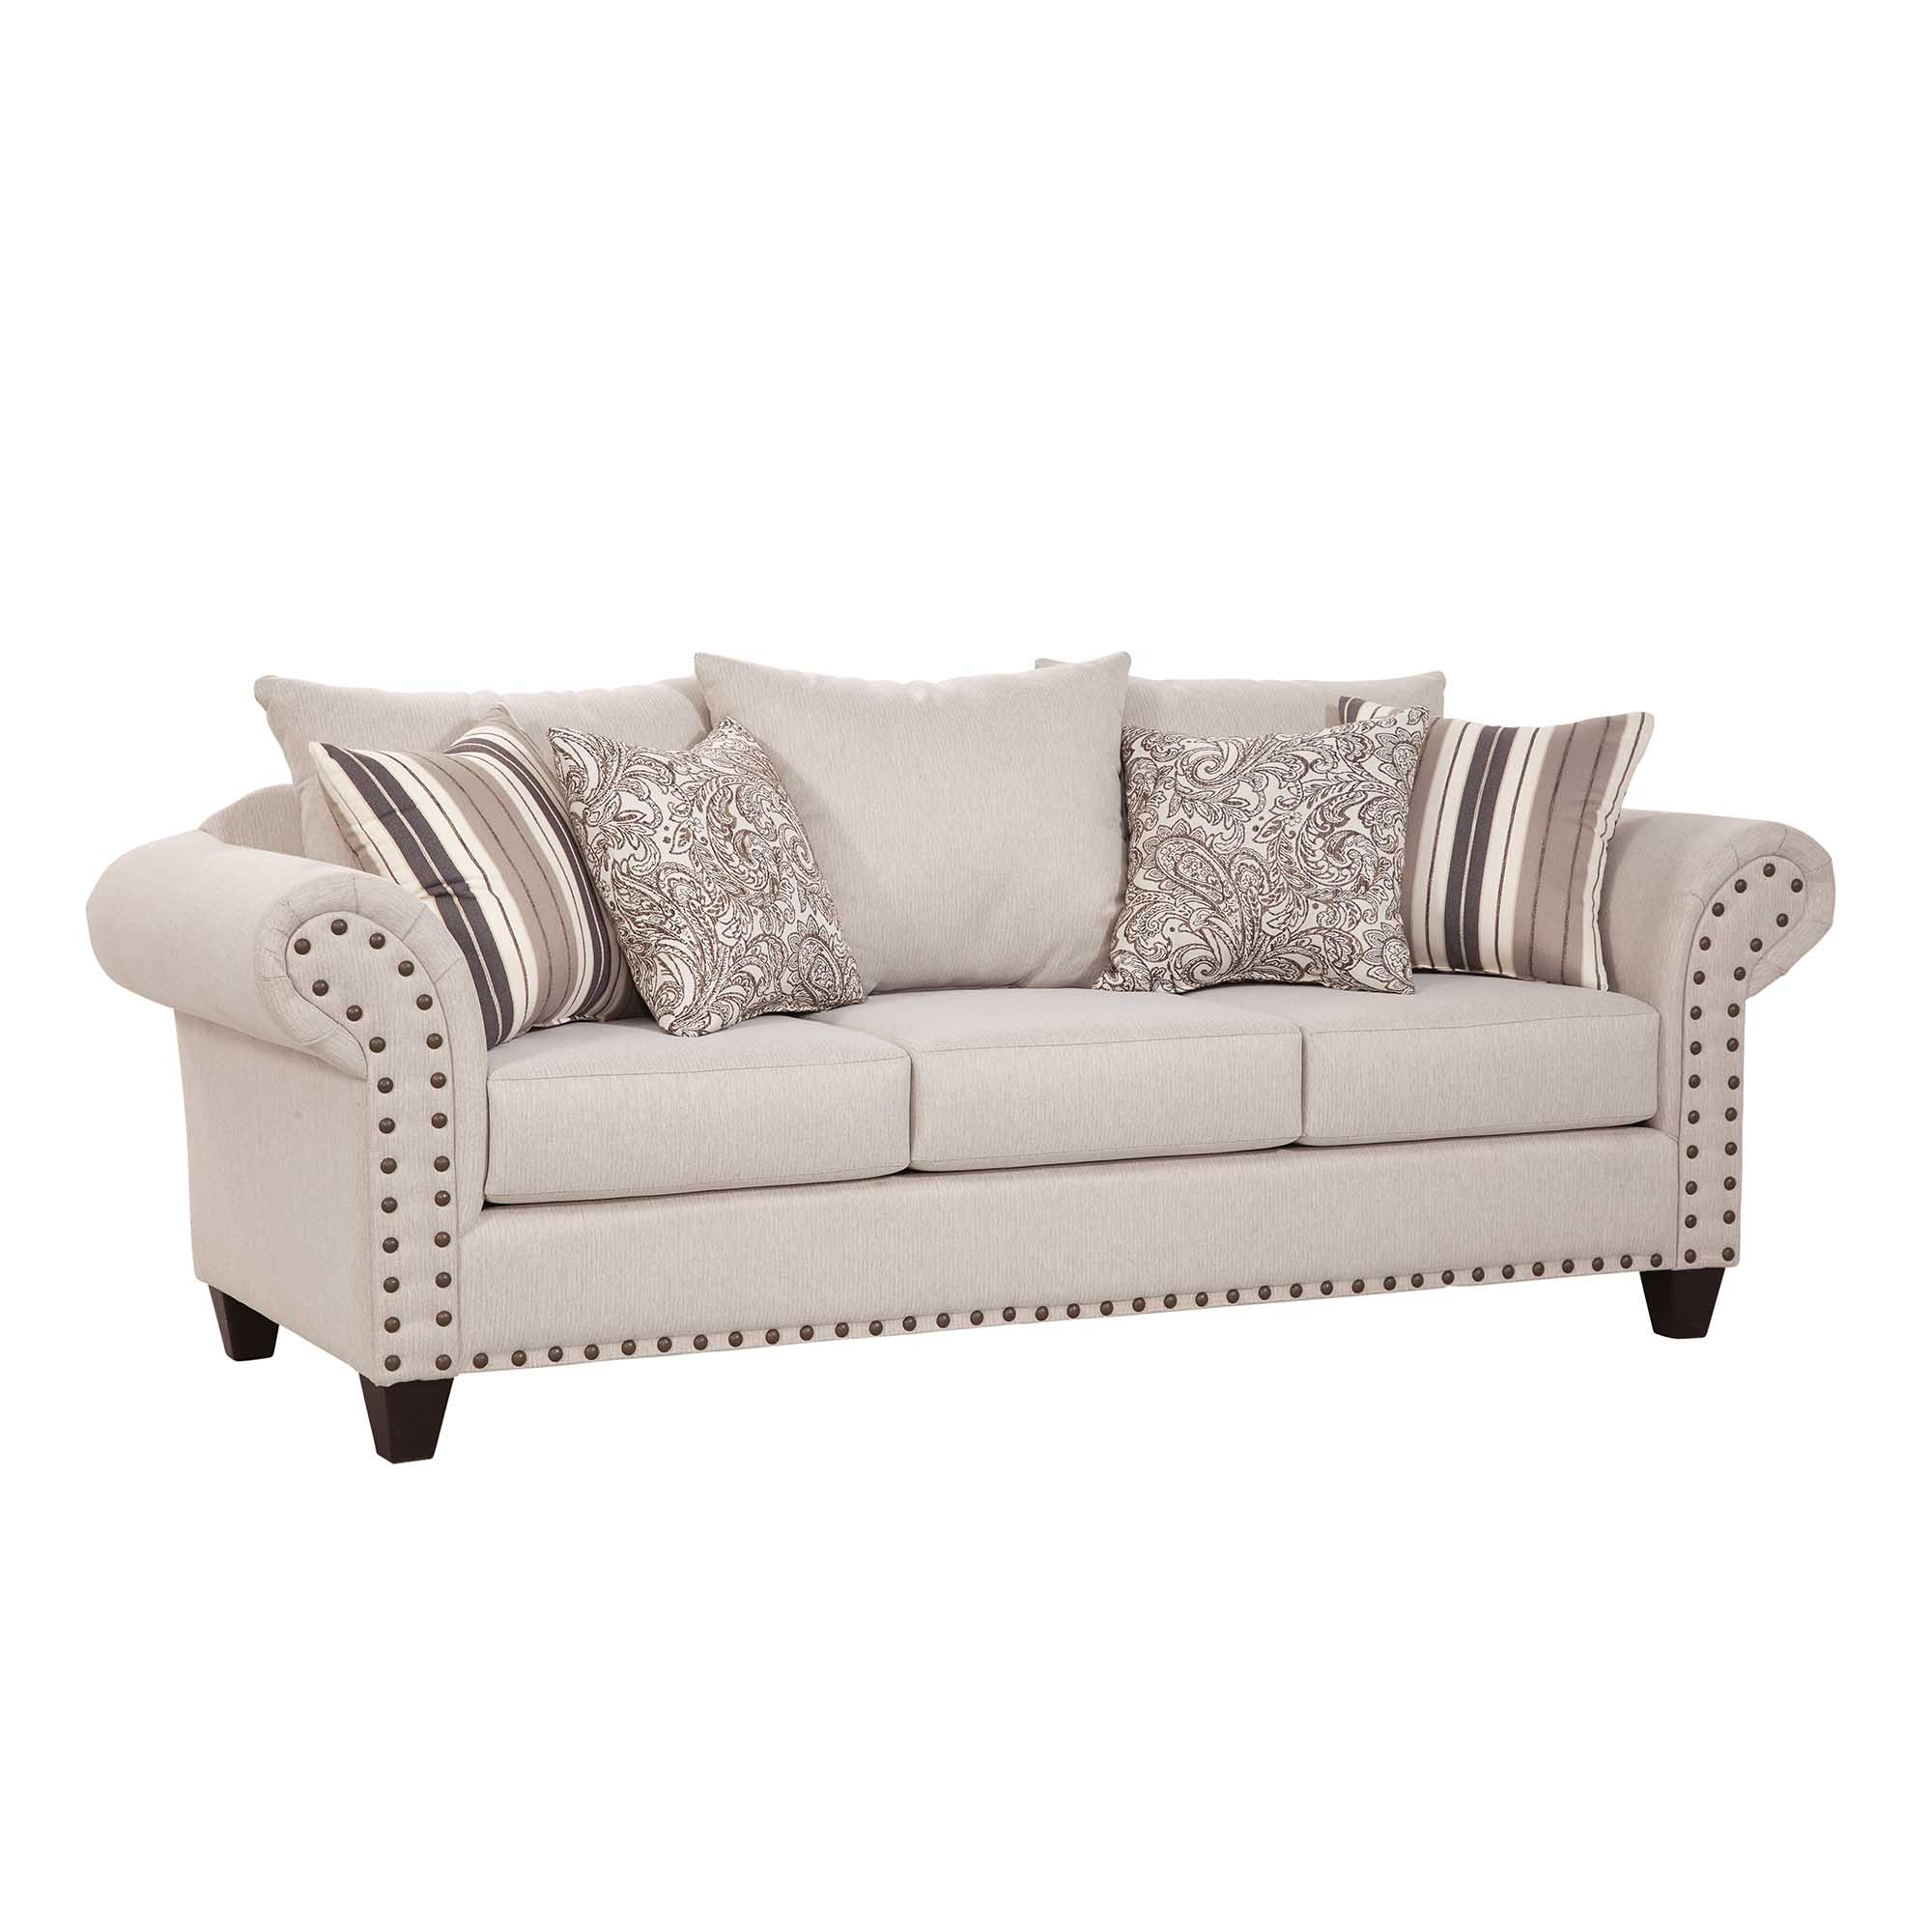 2-Piece Lizbeth Sofa and Chair